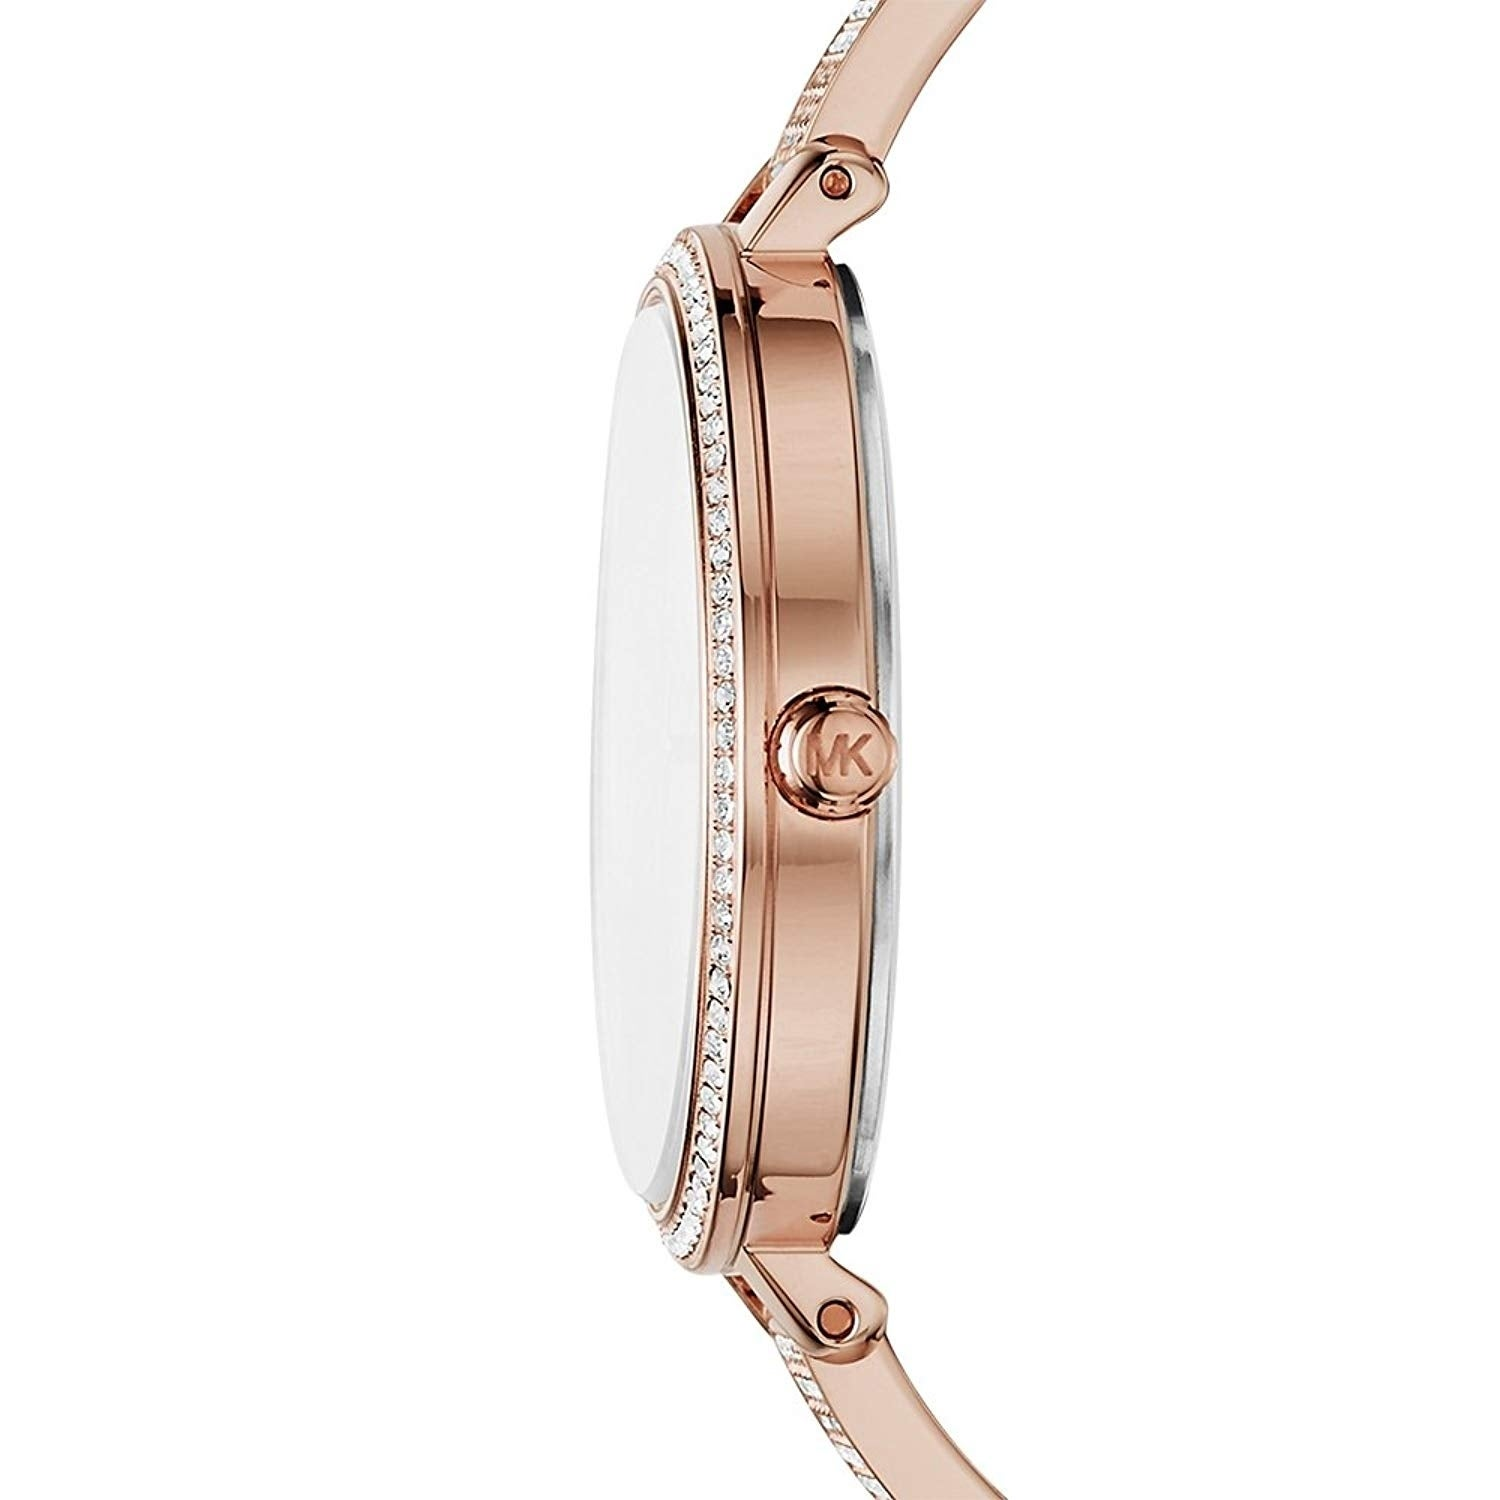 a0e85ebca8f5 Shop Michael Kors Women s Jaryn Crystal Pave Rose Gold Stainless Steel  Bangle Bracelet Watch - Free Shipping Today - Overstock - 22718395